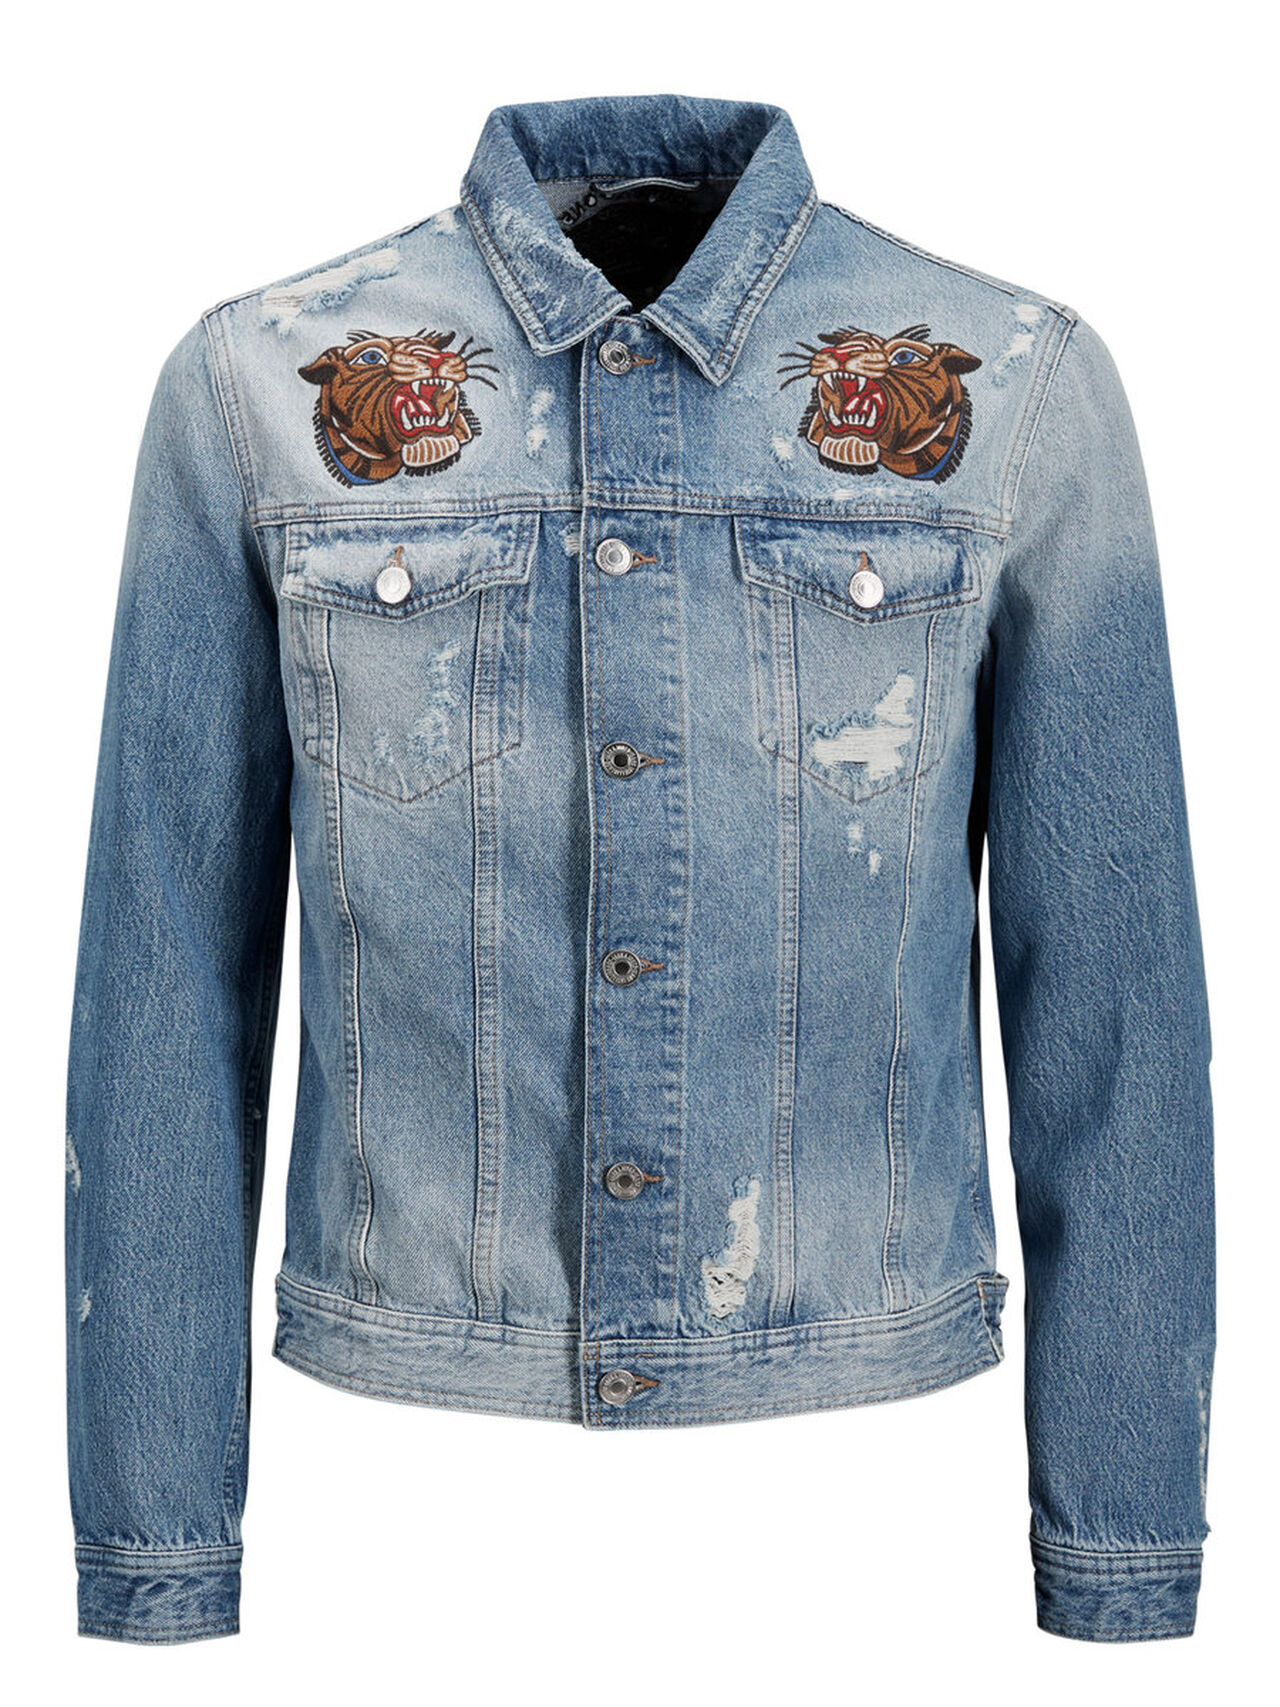 Alvin Jacket Jj 091 Denim Jacket